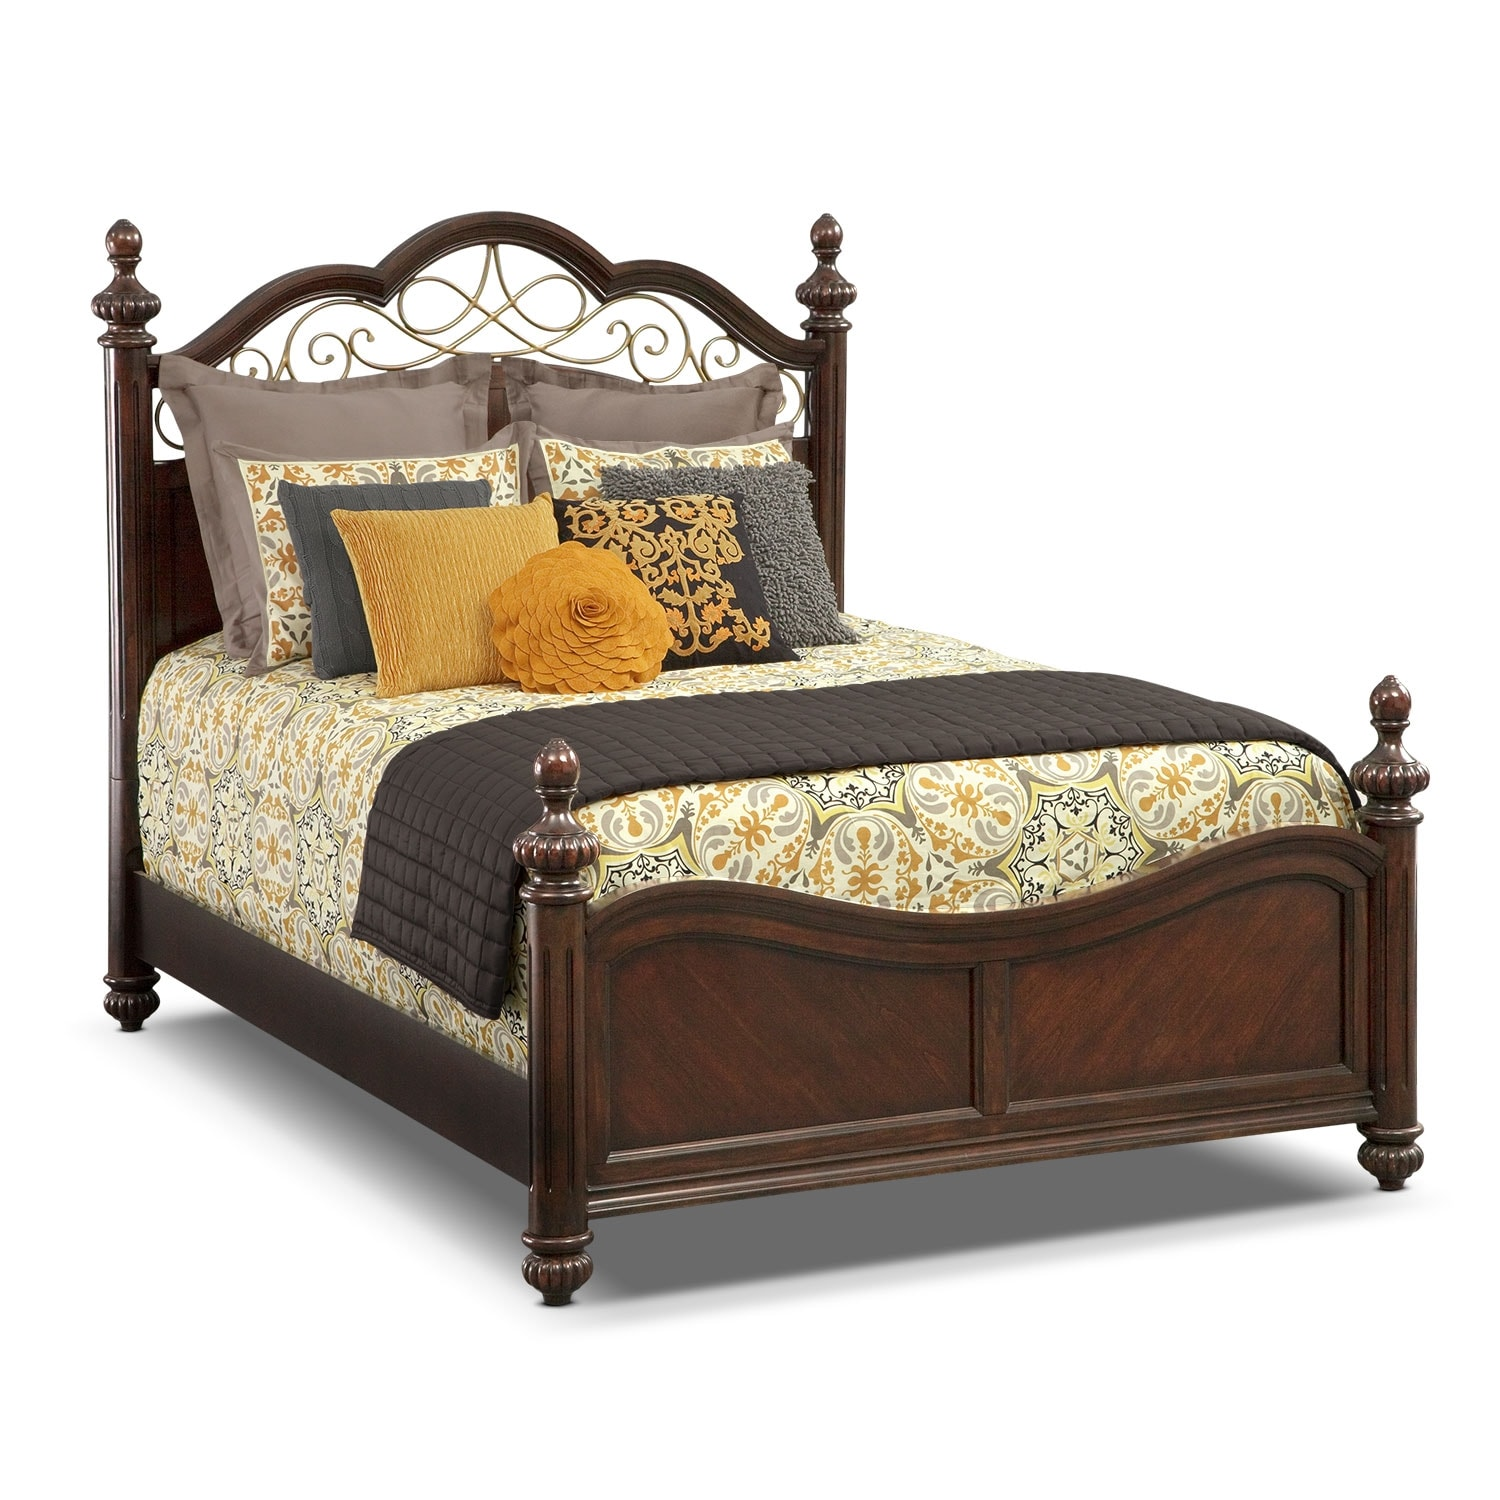 Tradewind Queen Bedding Set